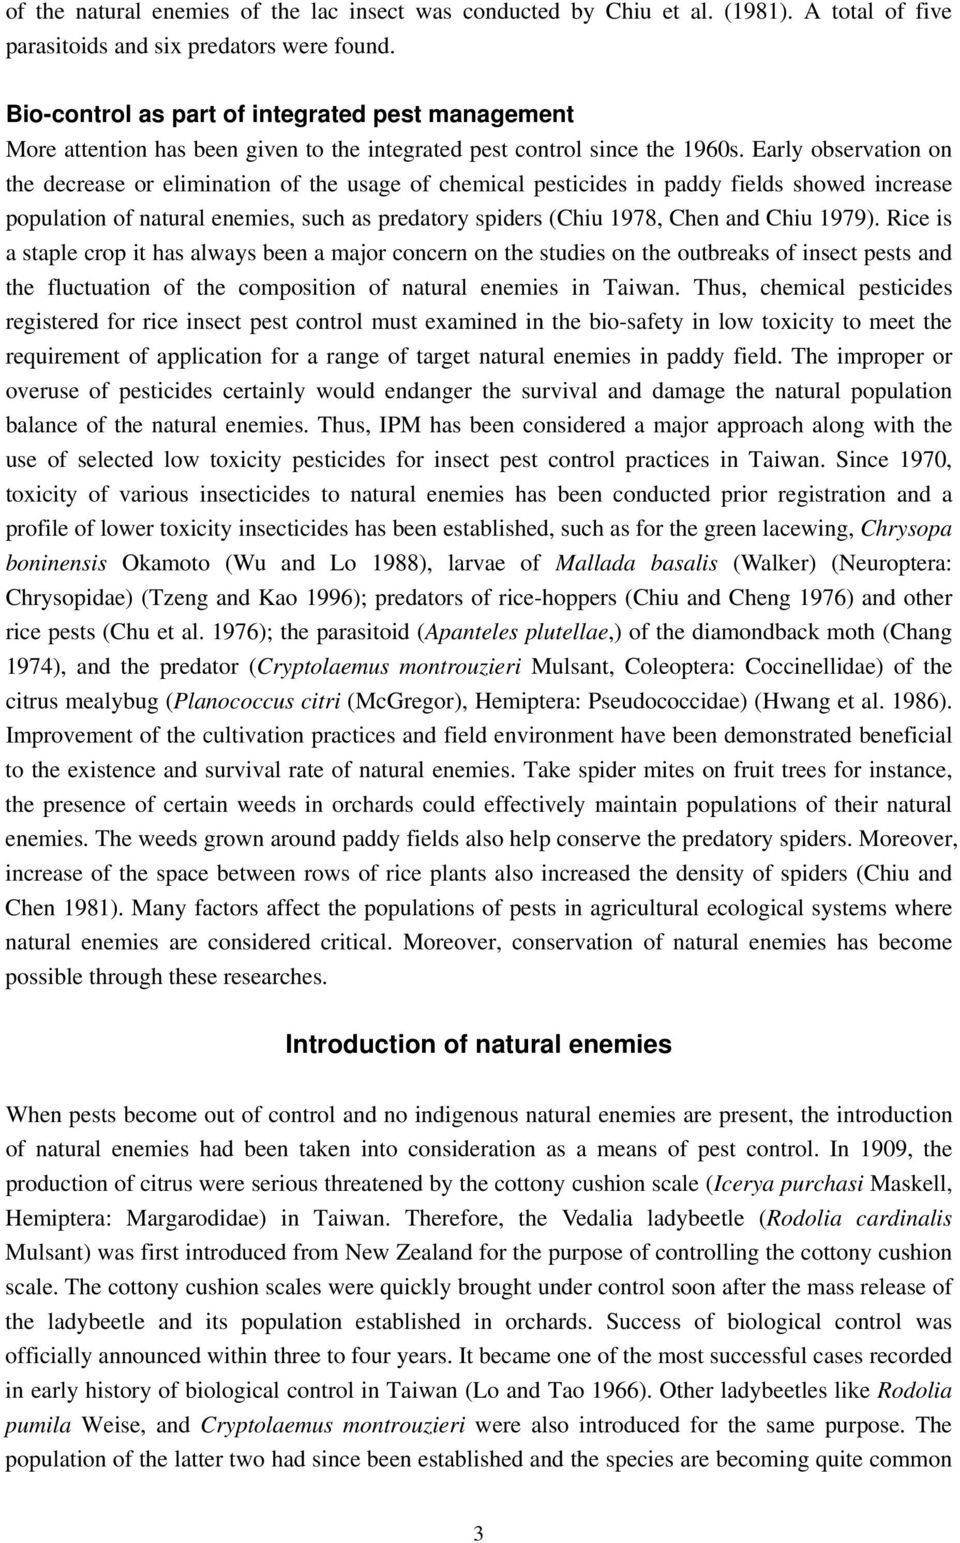 Early observation on the decrease or elimination of the usage of chemical pesticides in paddy fields showed increase population of natural enemies, such as predatory spiders (Chiu 1978, Chen and Chiu